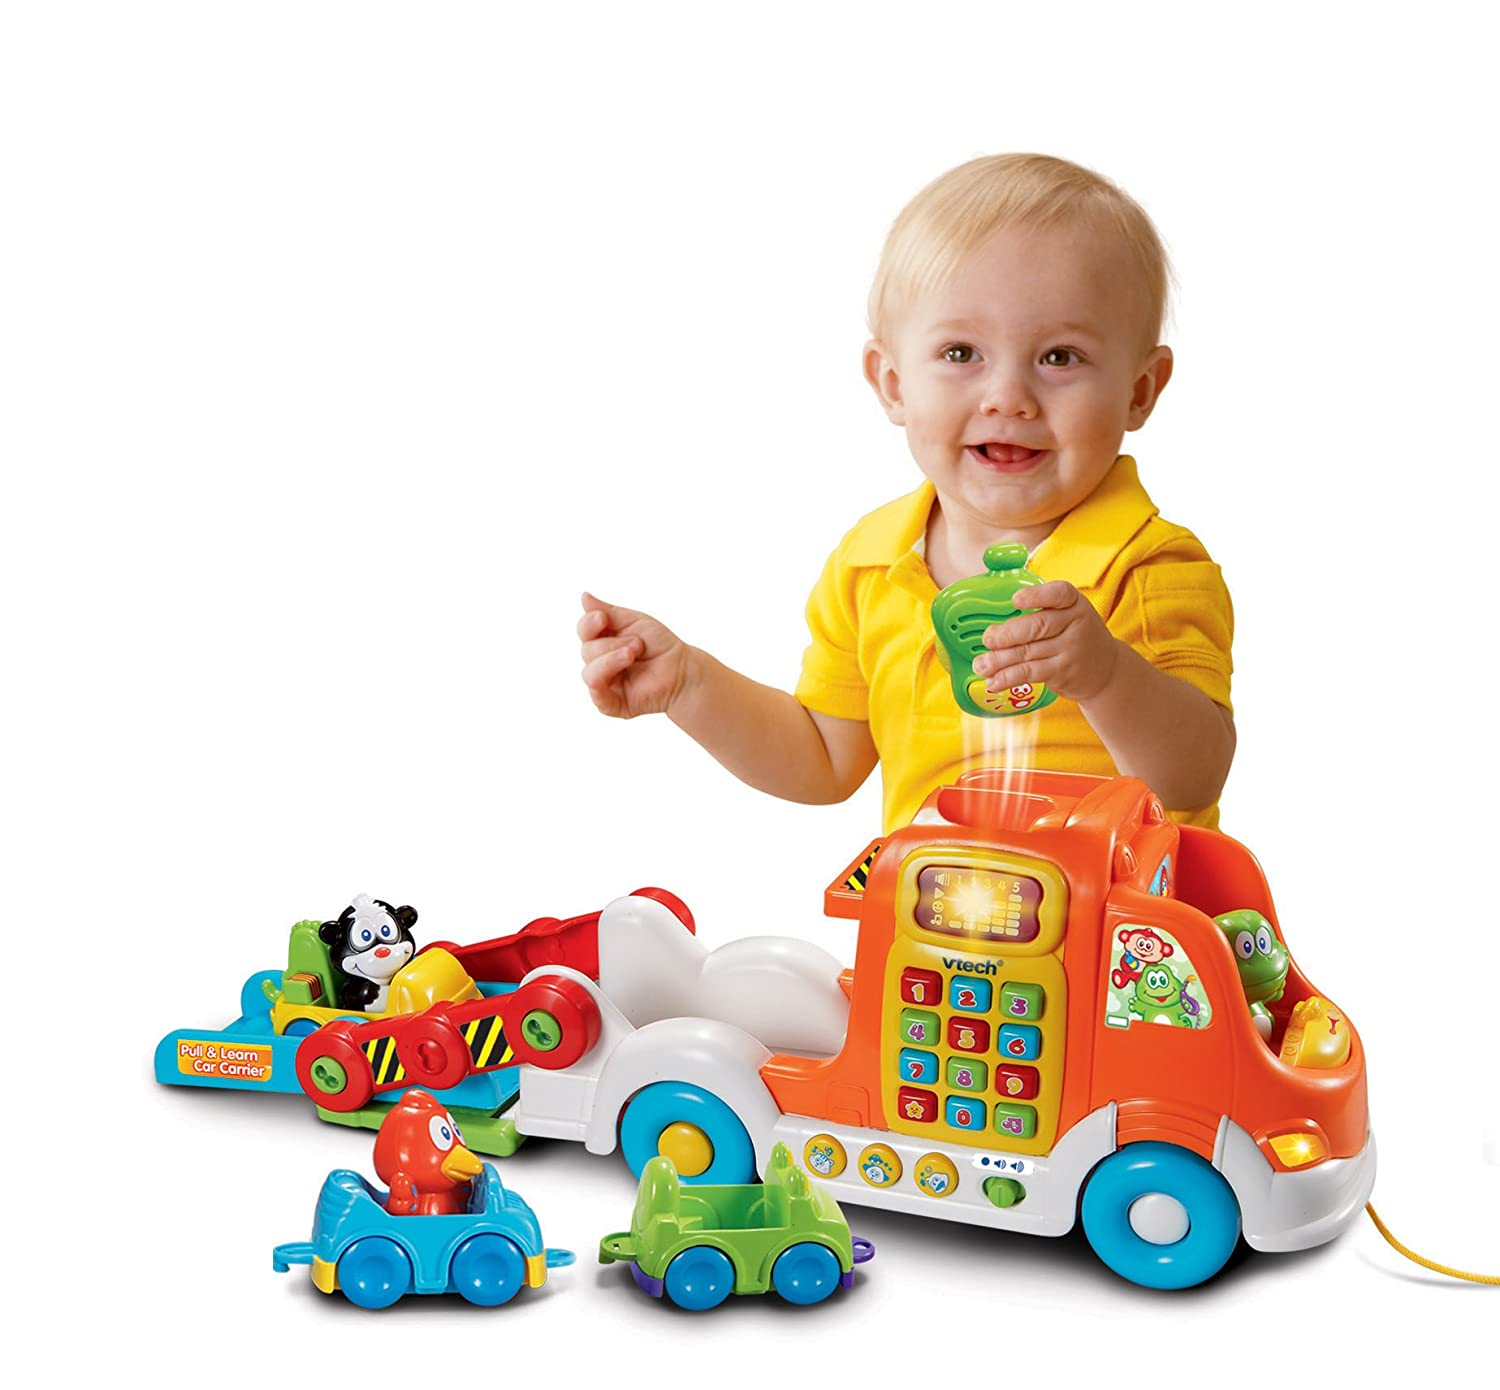 VTech Pull and Learn Car Carrier Amazon Toys & Games